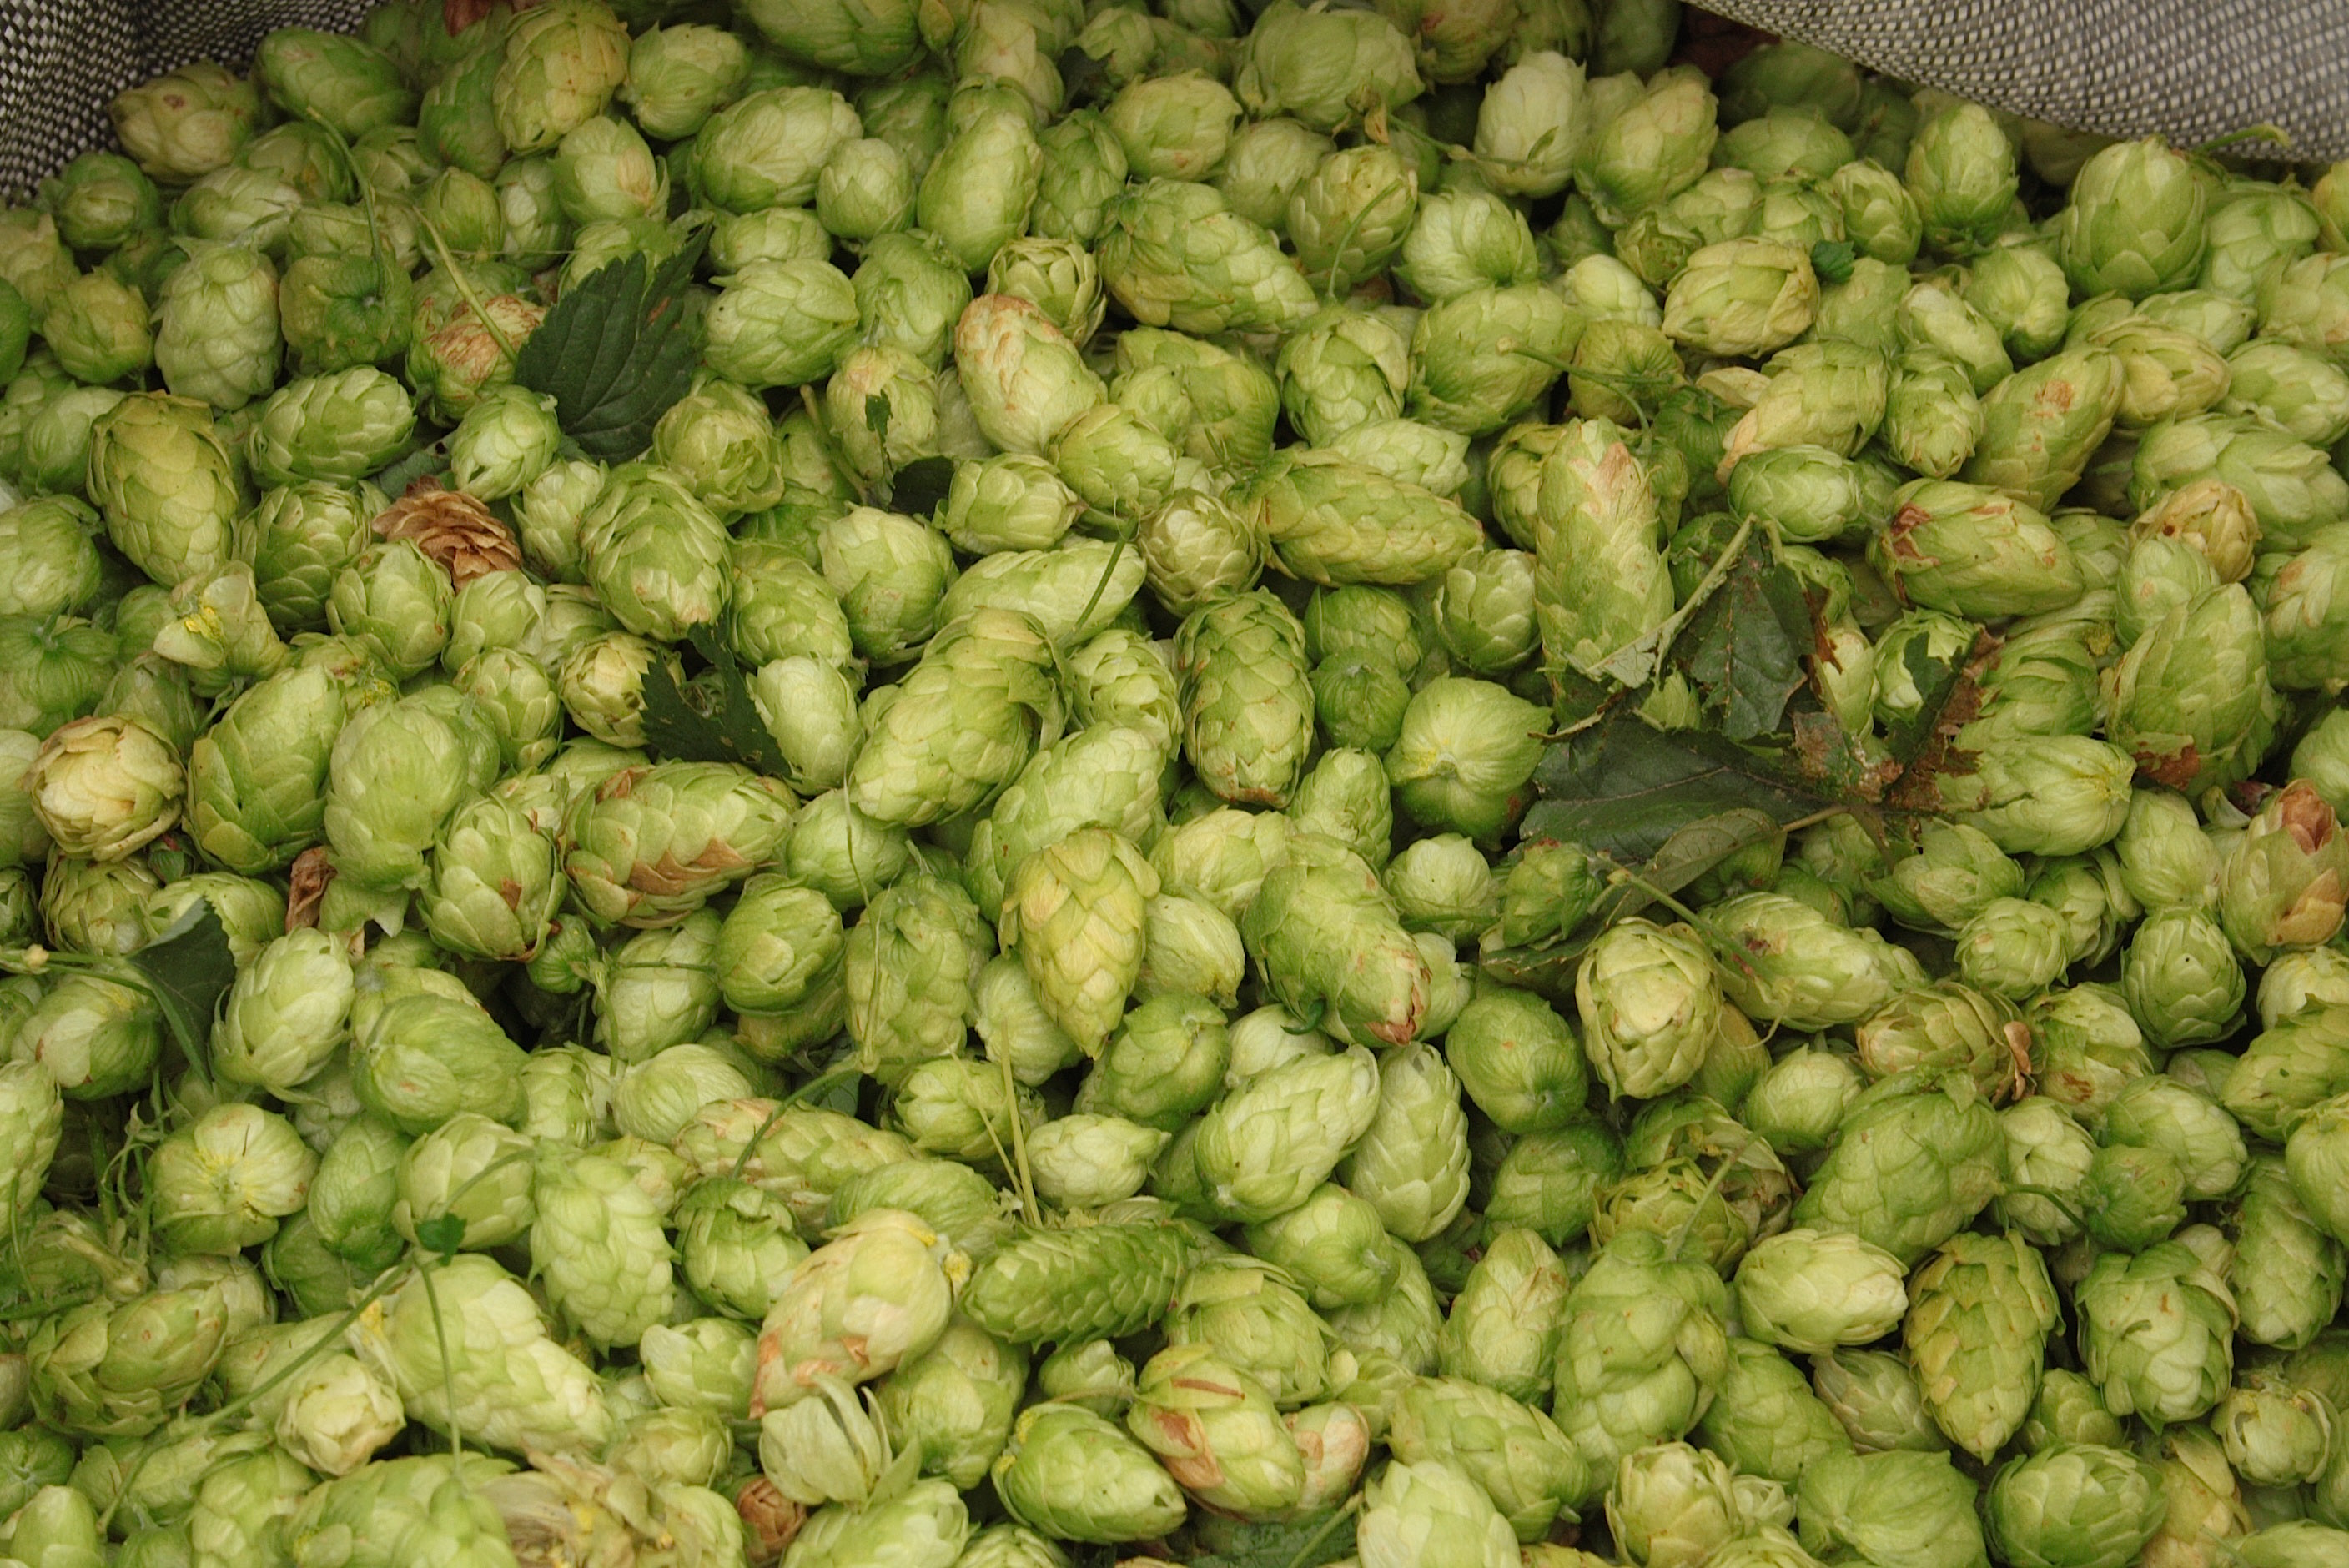 Freshly picked Amarillo Hops during the 2016 harvest at Crosby Hop Farm. (photo by Ryan Spencer)